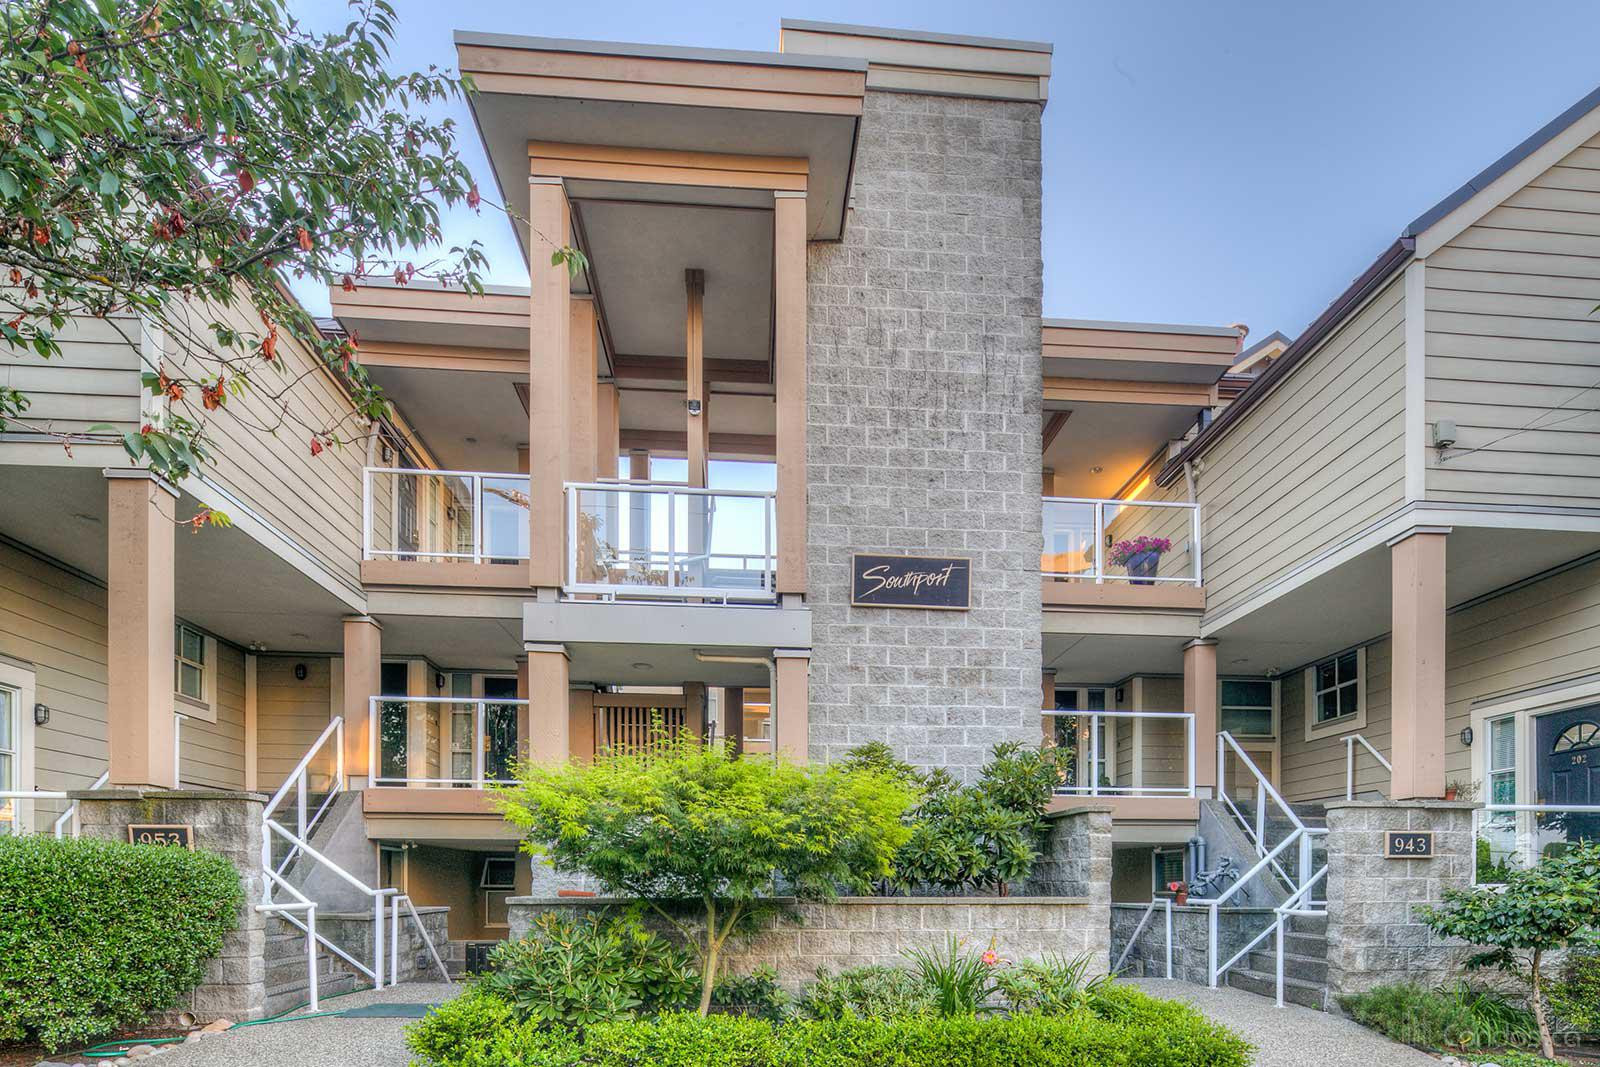 Southport at 933 W 8th Ave, Vancouver 1